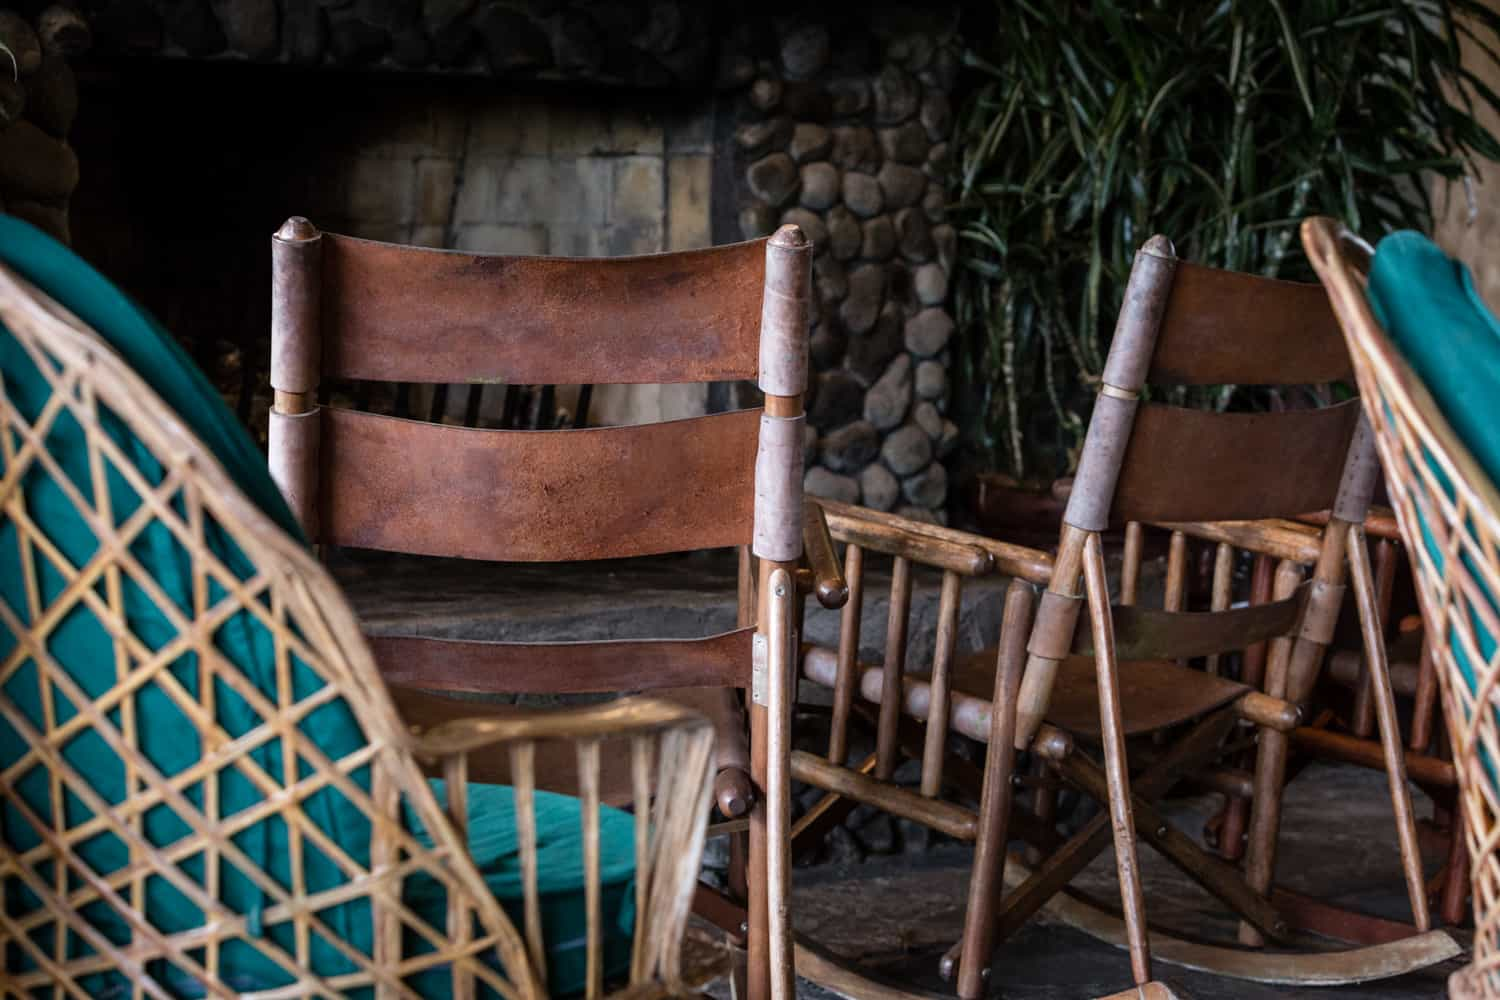 Leather chairs in front of fireplace inside Tortillas Restaurant at La Paz Waterfall Gardens.